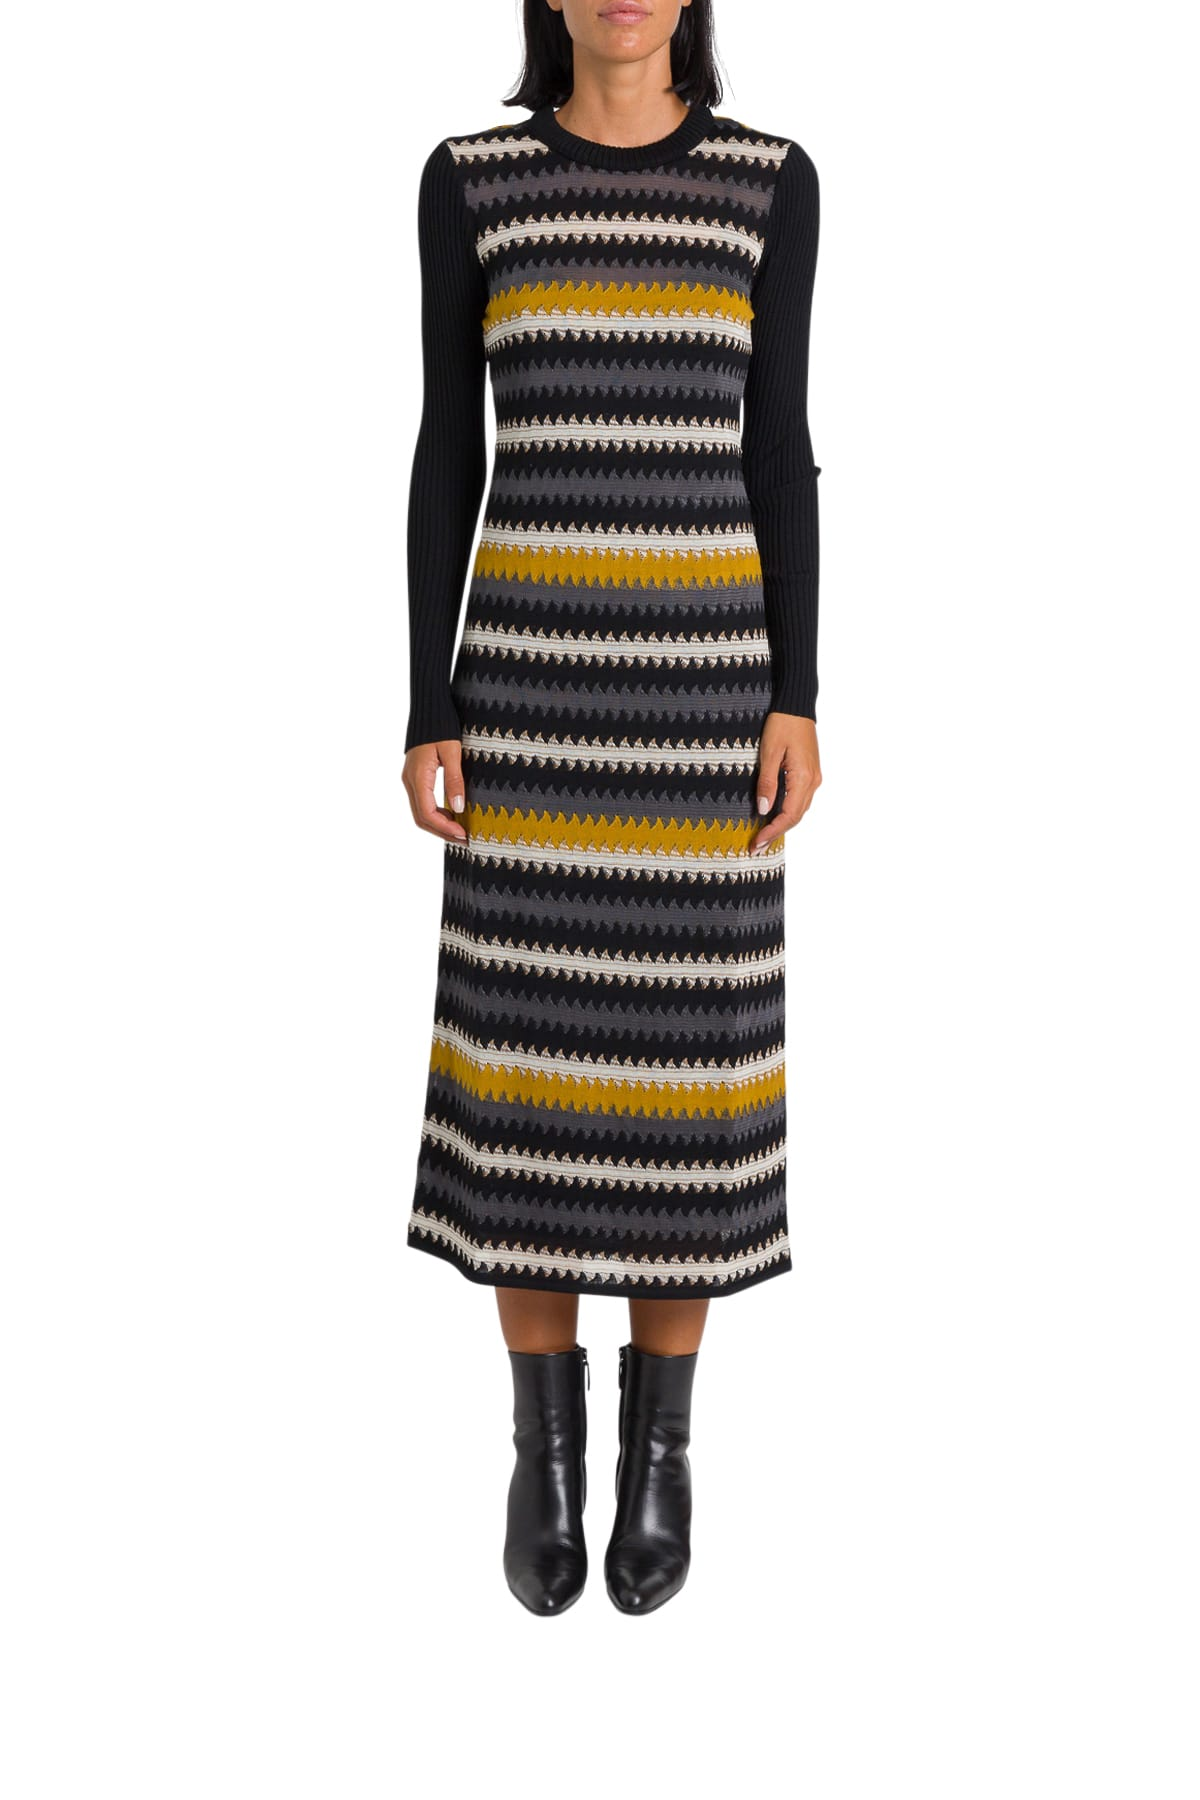 M Missoni Knitted Dress With Herringbone Stripes